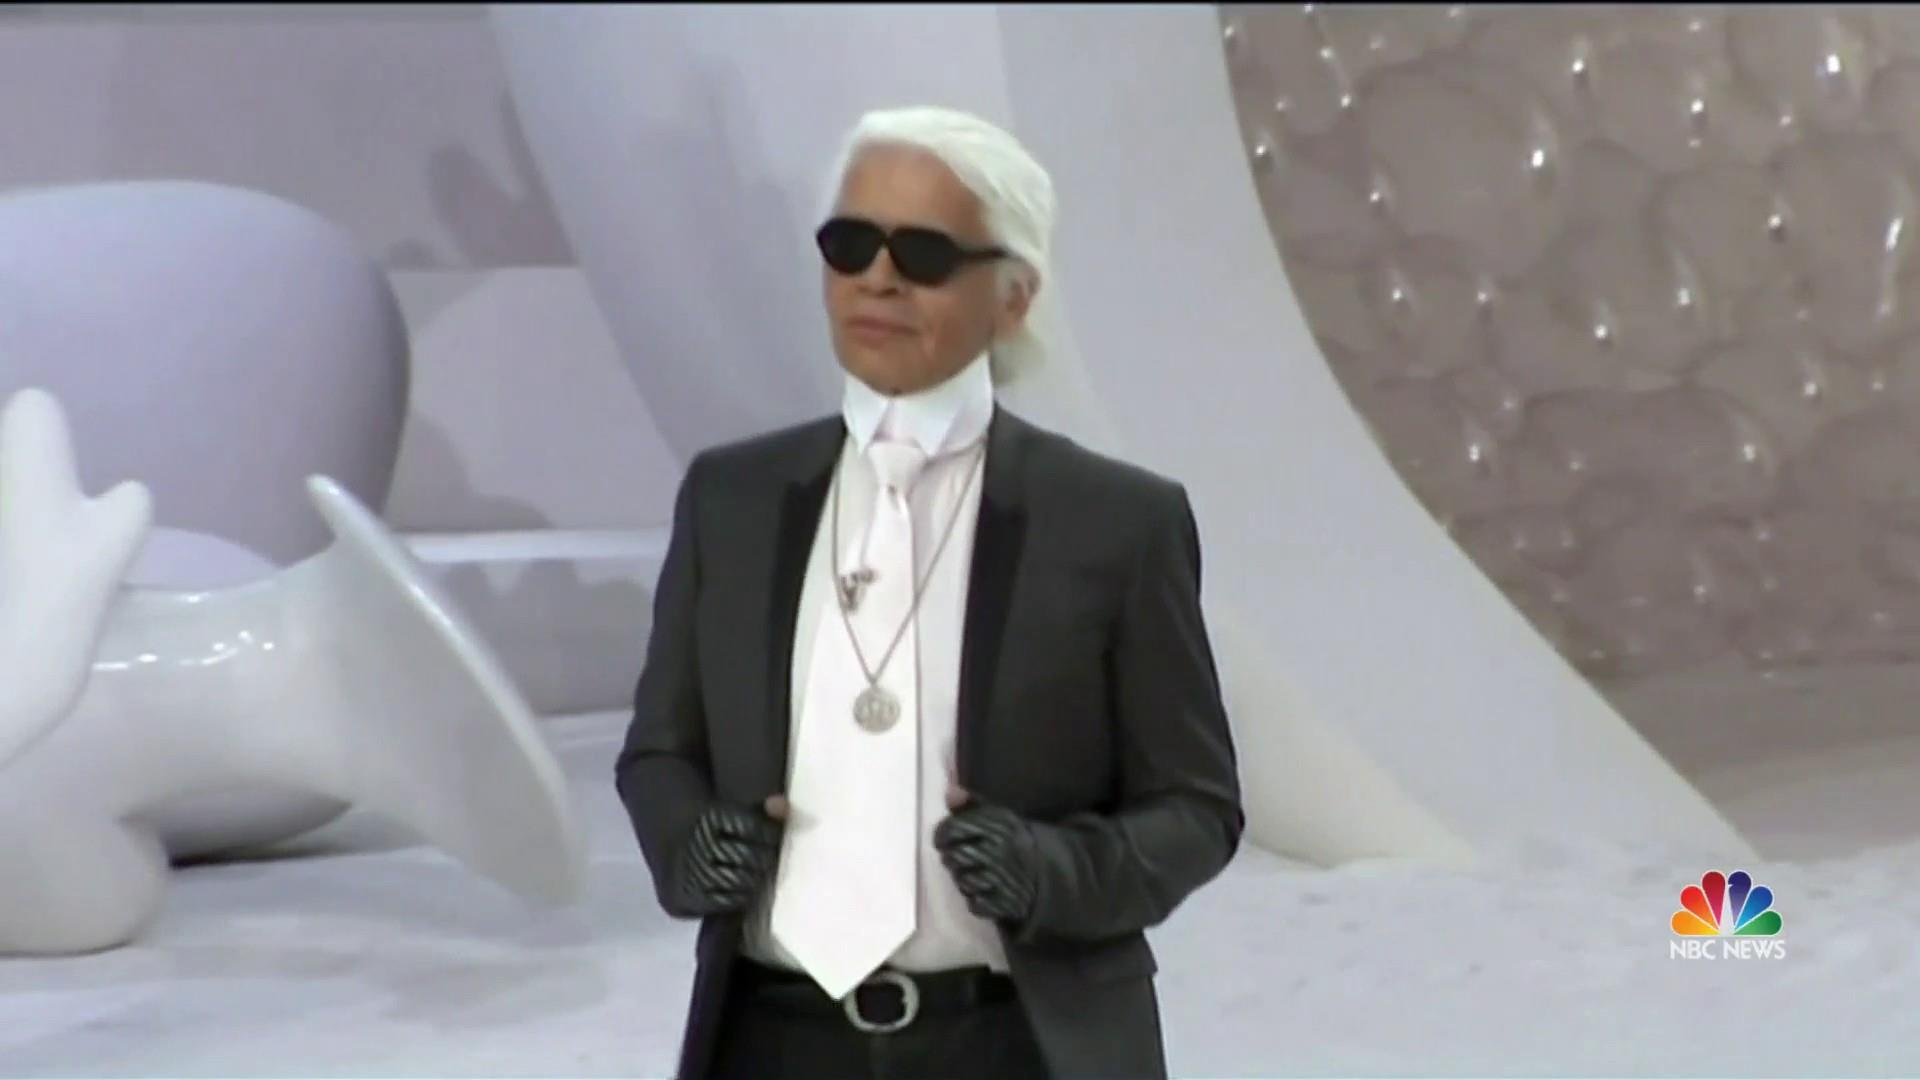 Iconic fashion designer Karl Lagerfeld dies at 85